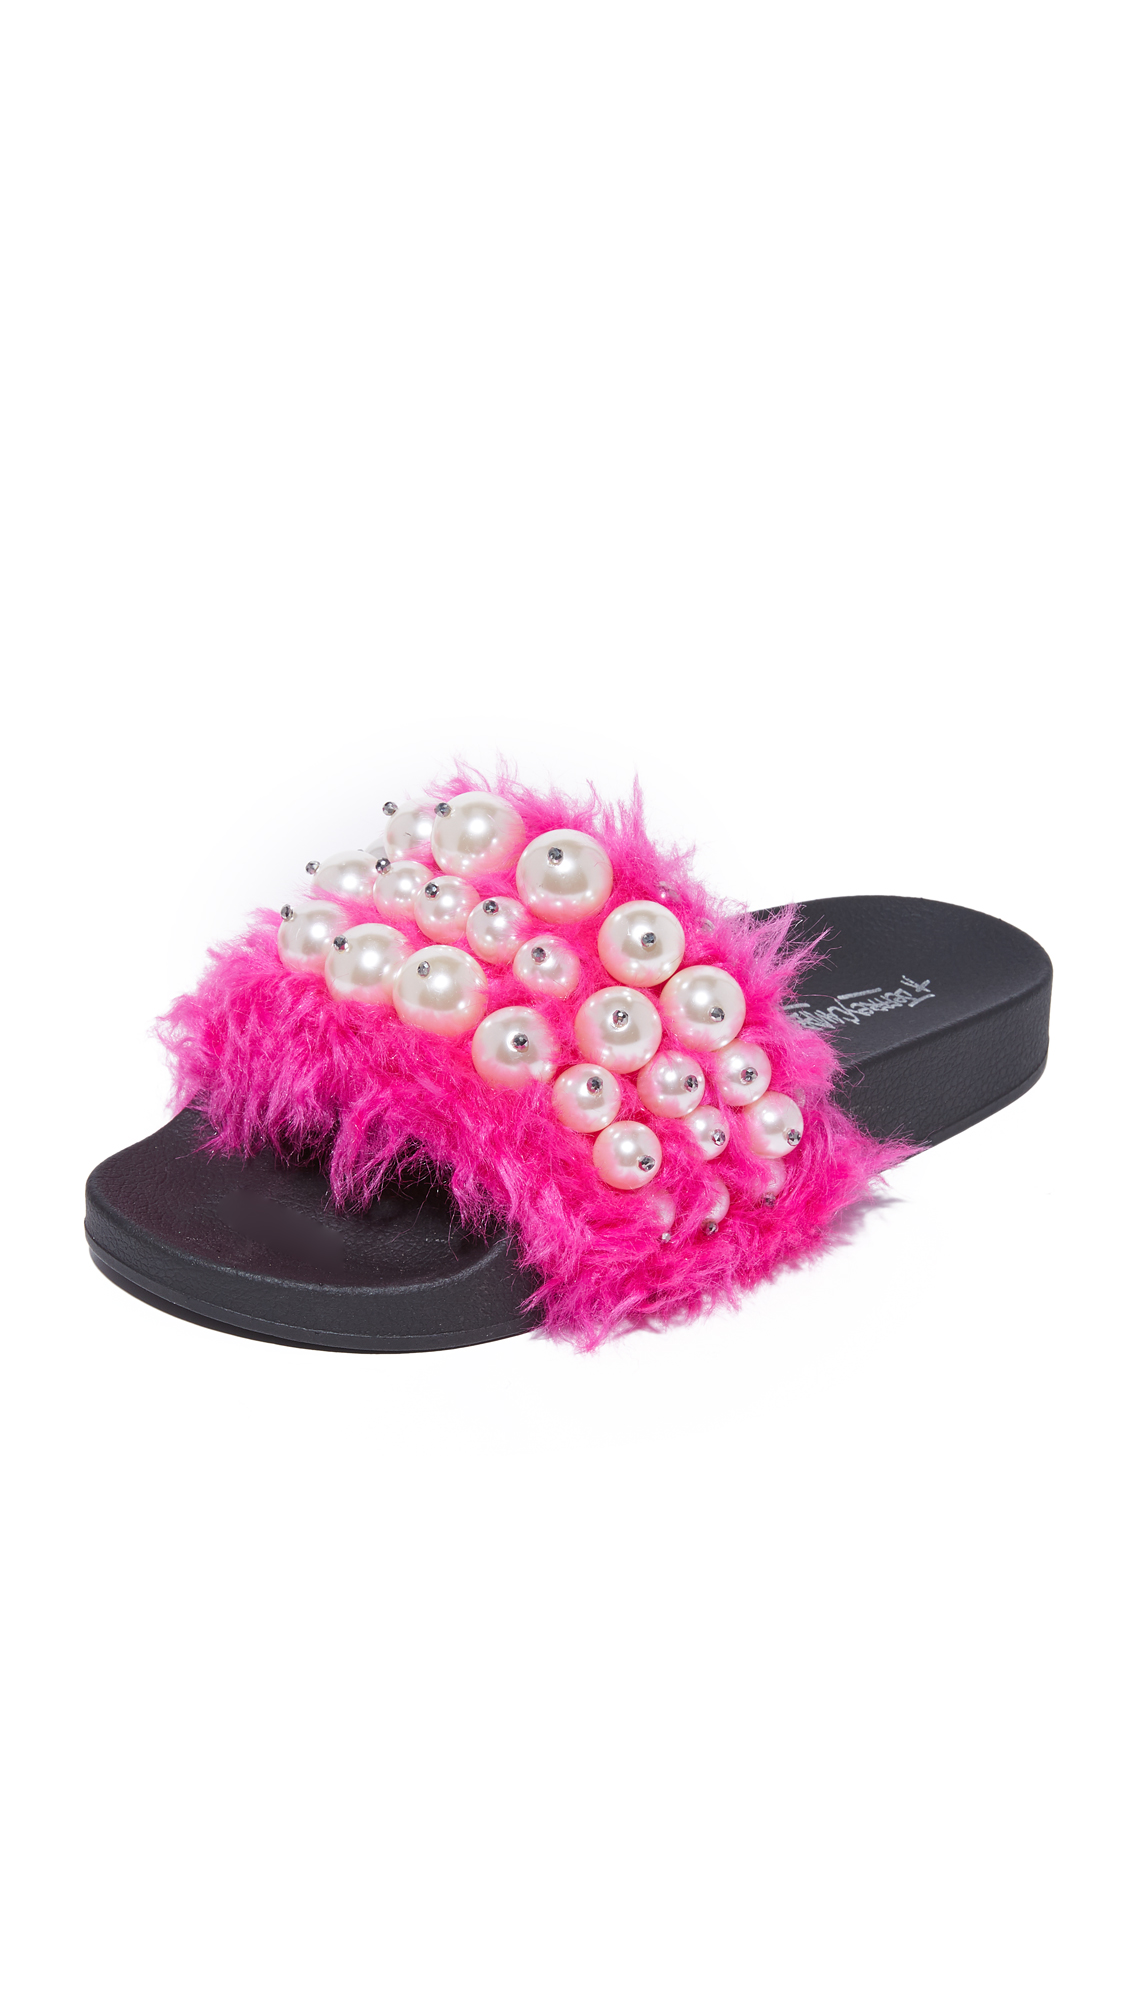 Jeffrey Campbell Pearl Sandals - Fuchsia